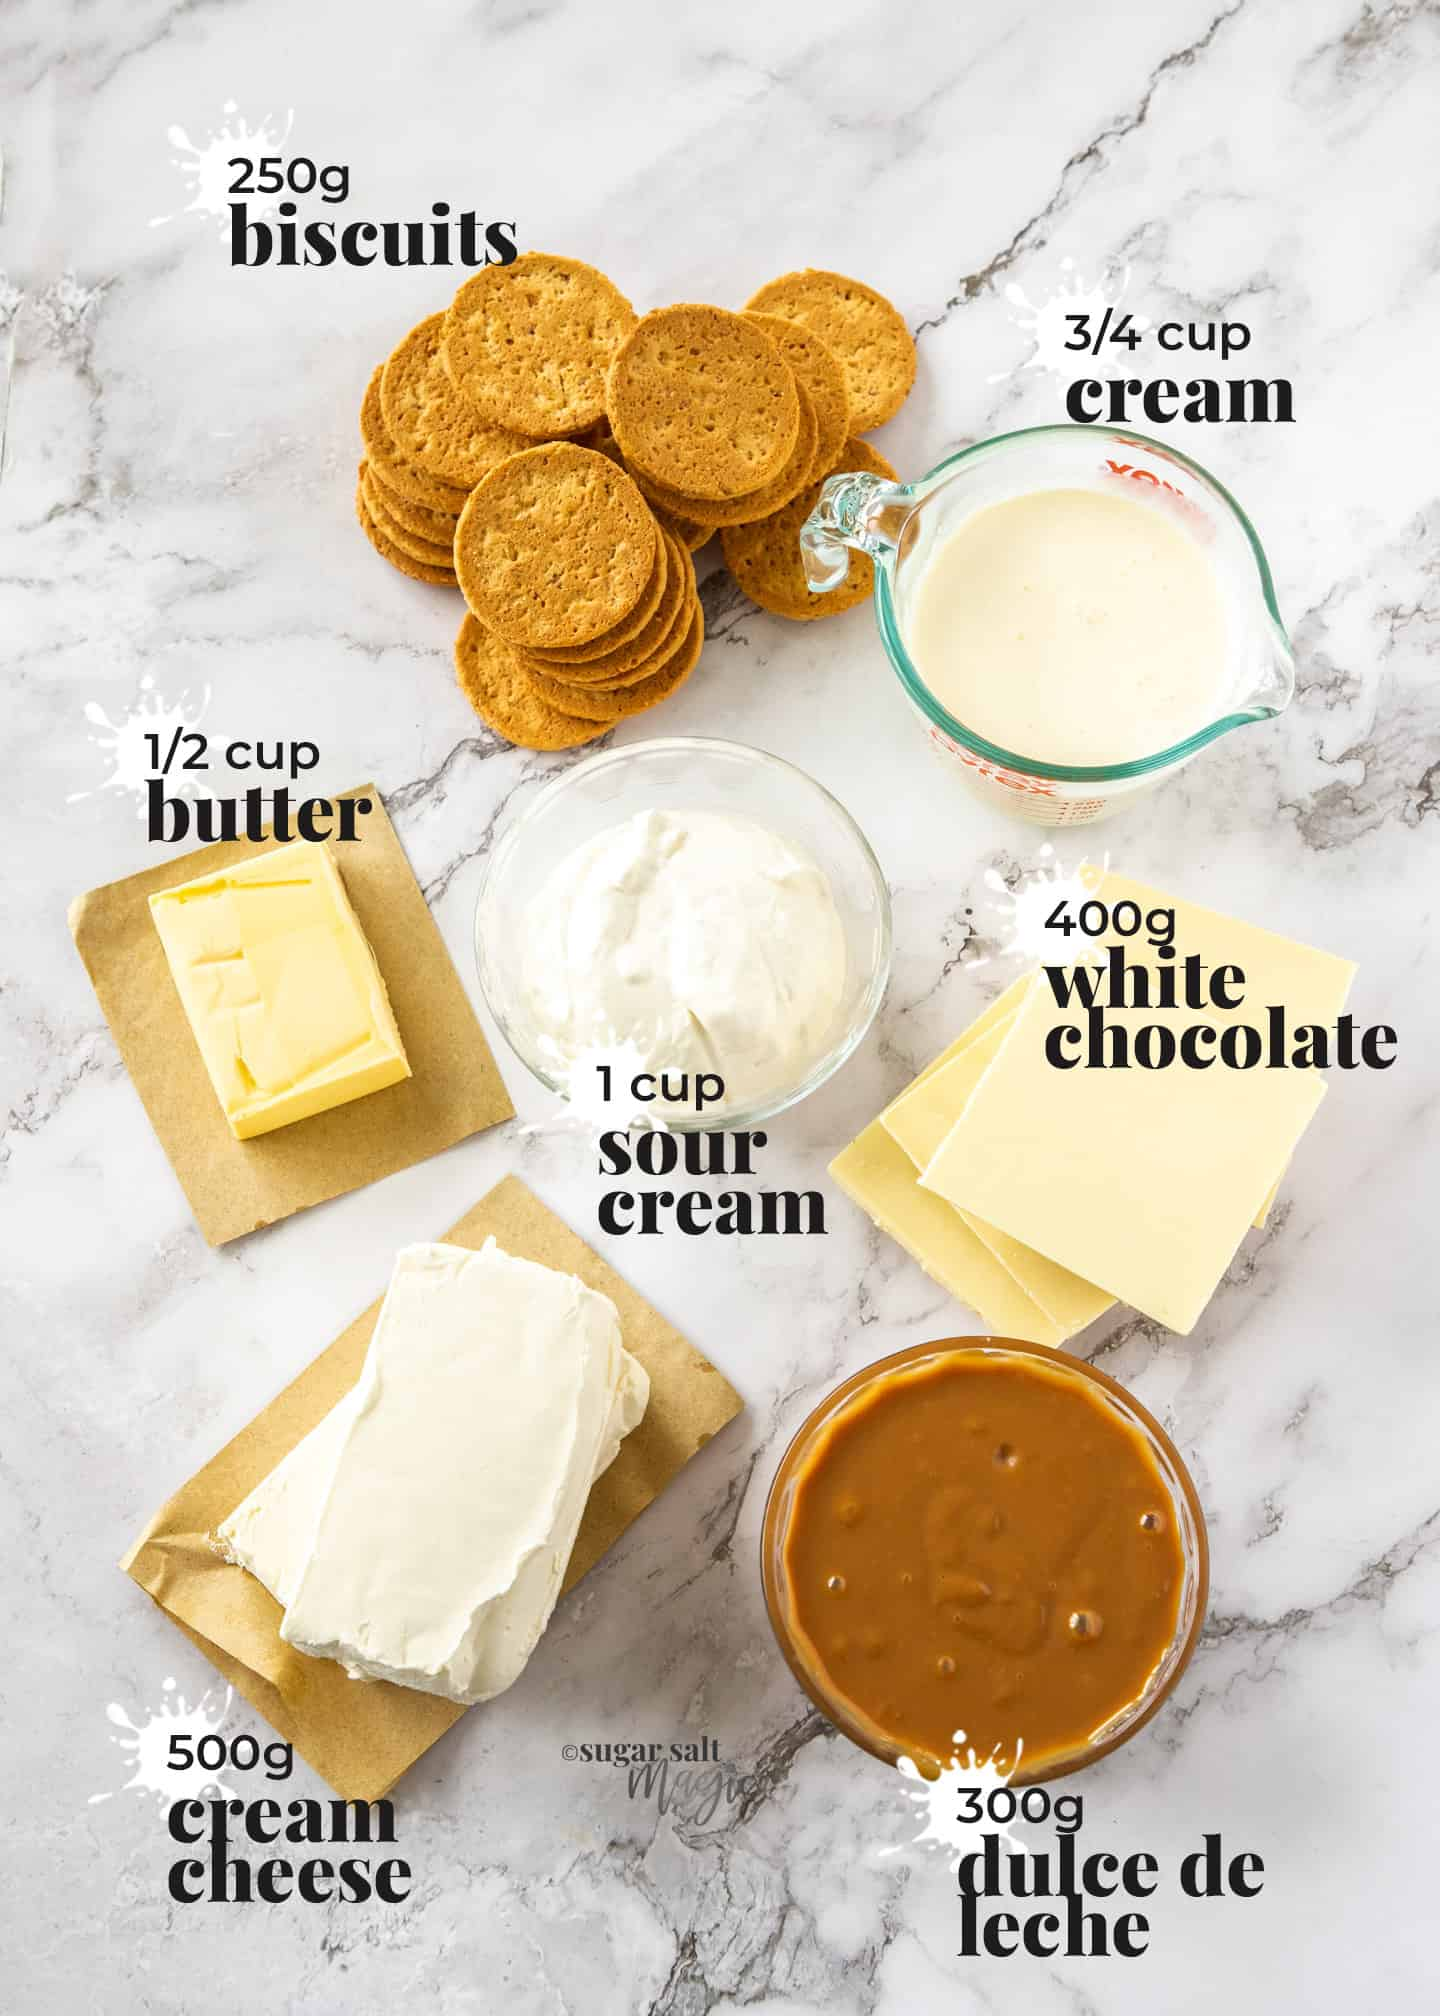 Ingredients for white chocolate cheesecake laid out on a marble benchtop.